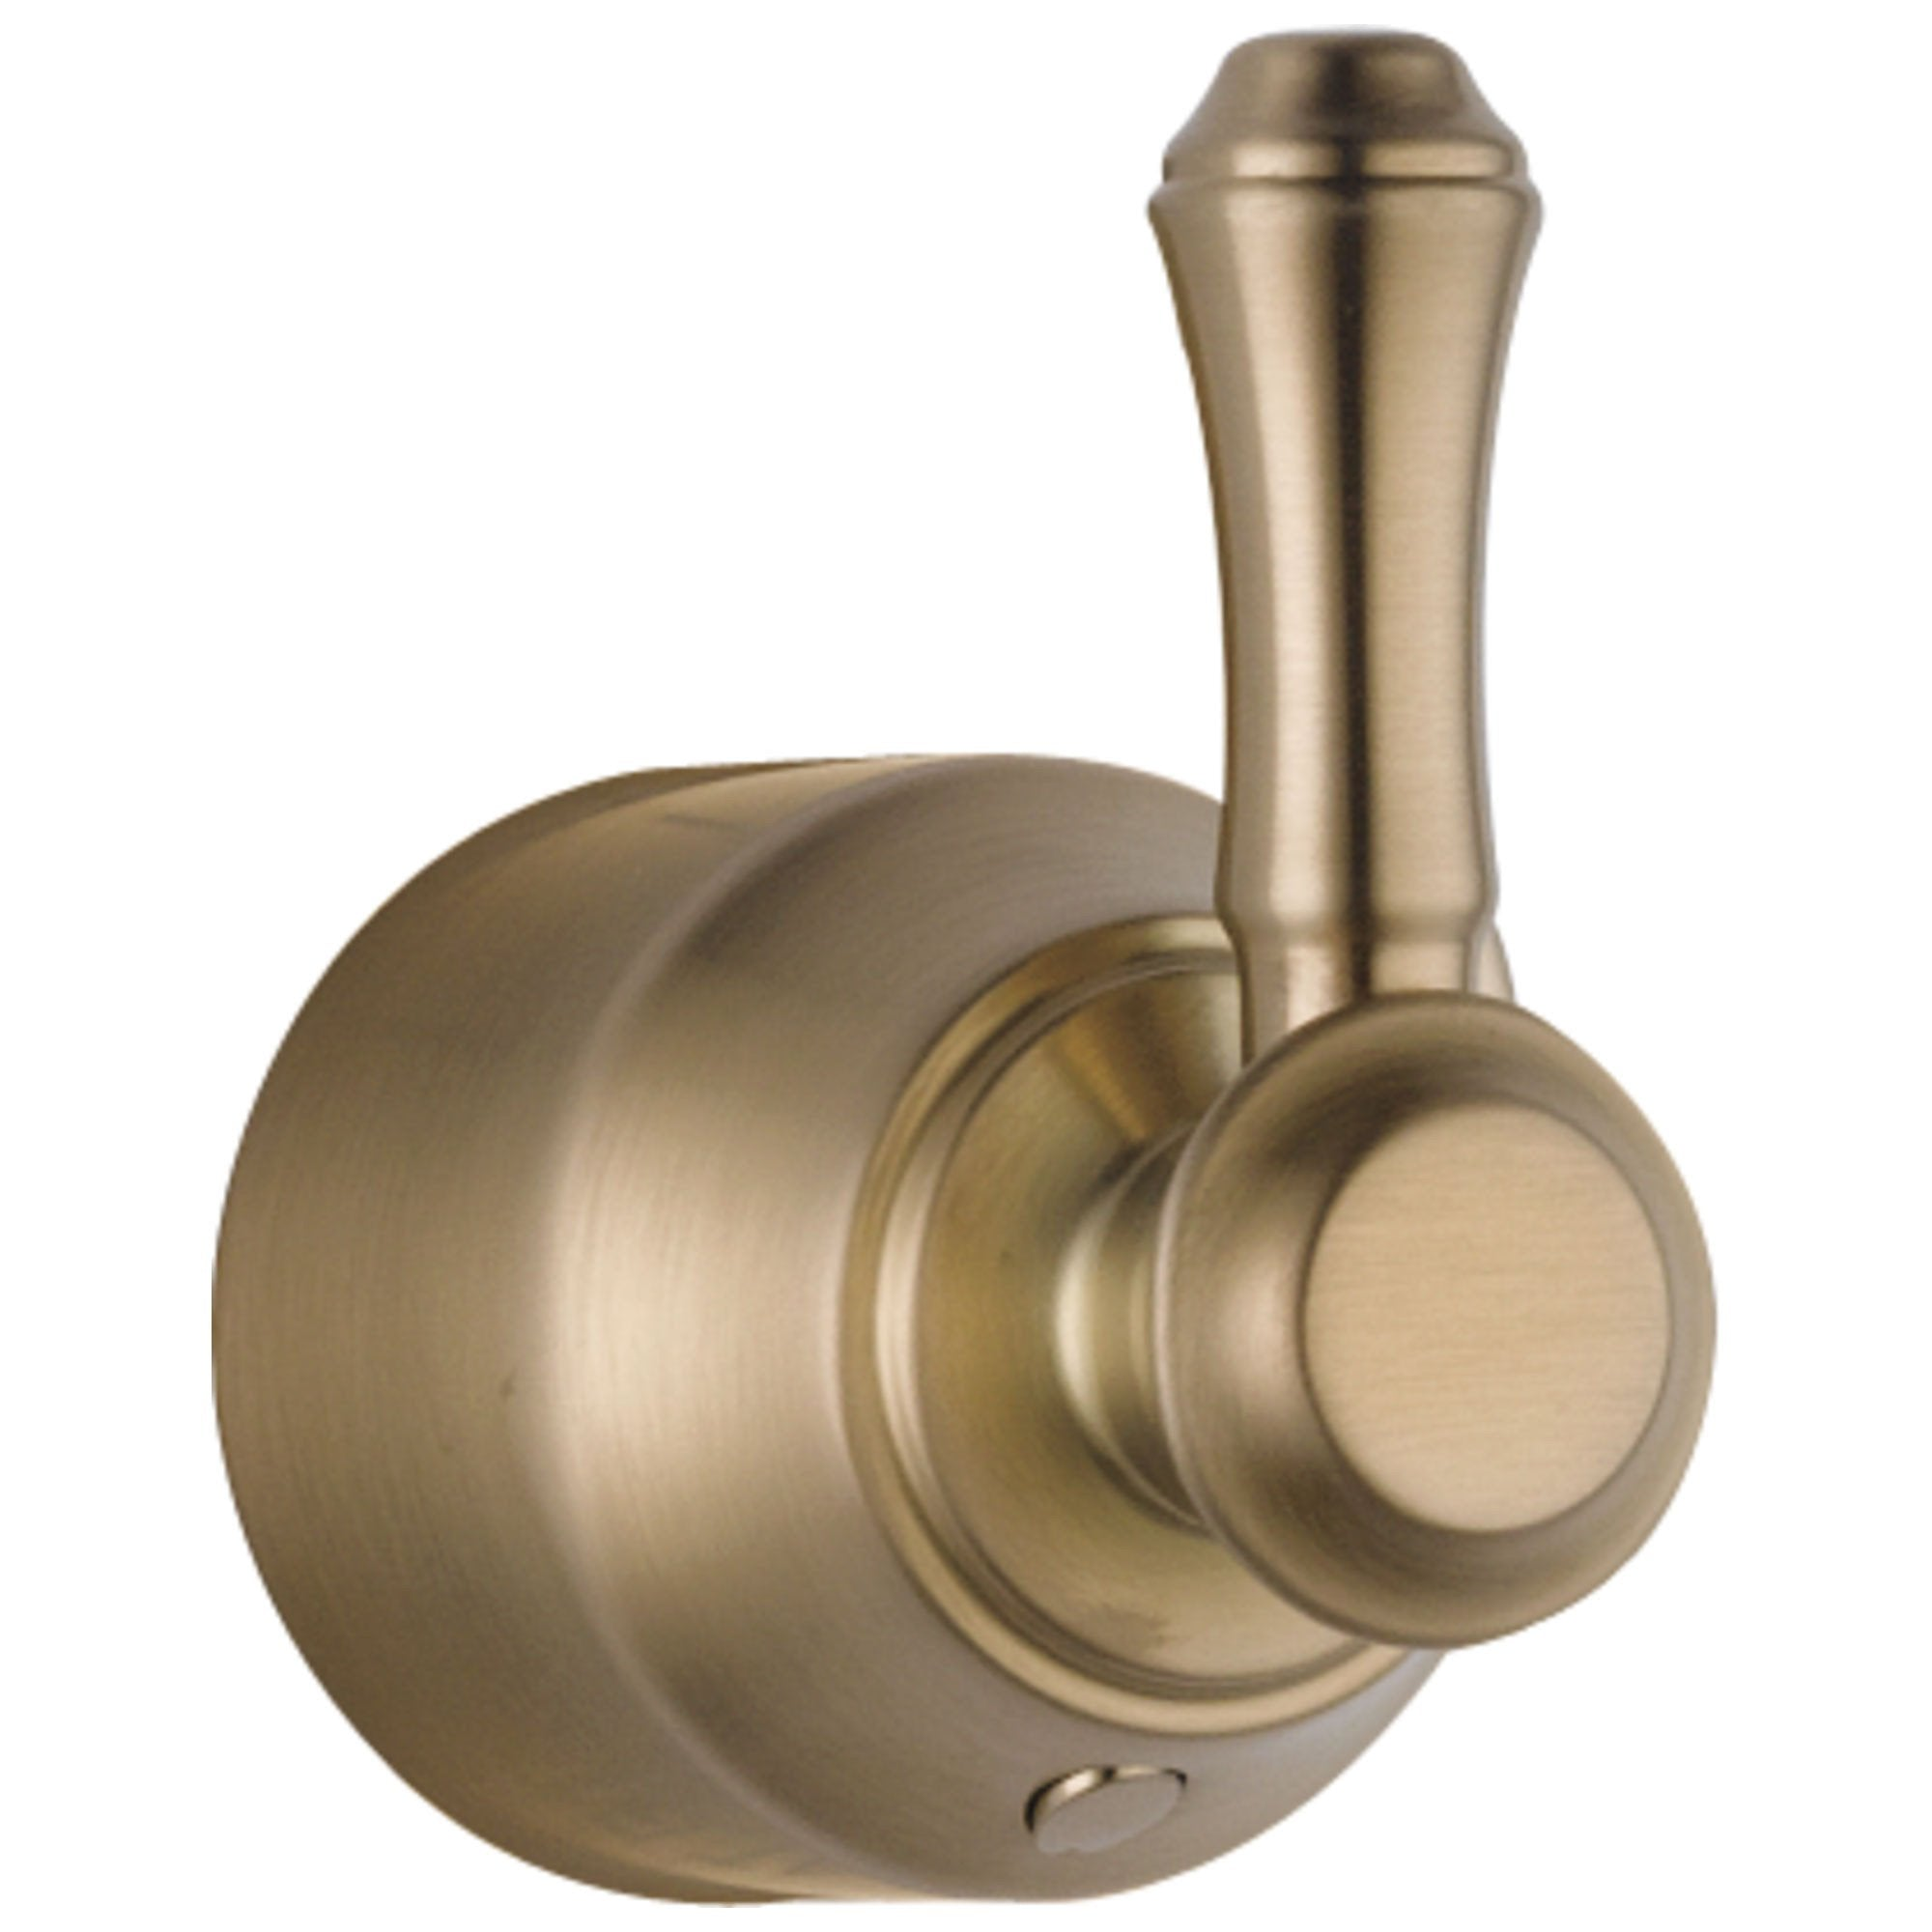 Delta Cassidy Collection Champagne Bronze Finish Diverter / Transfer Valve Lever Handle - Quantity 1 Included DH597CZ